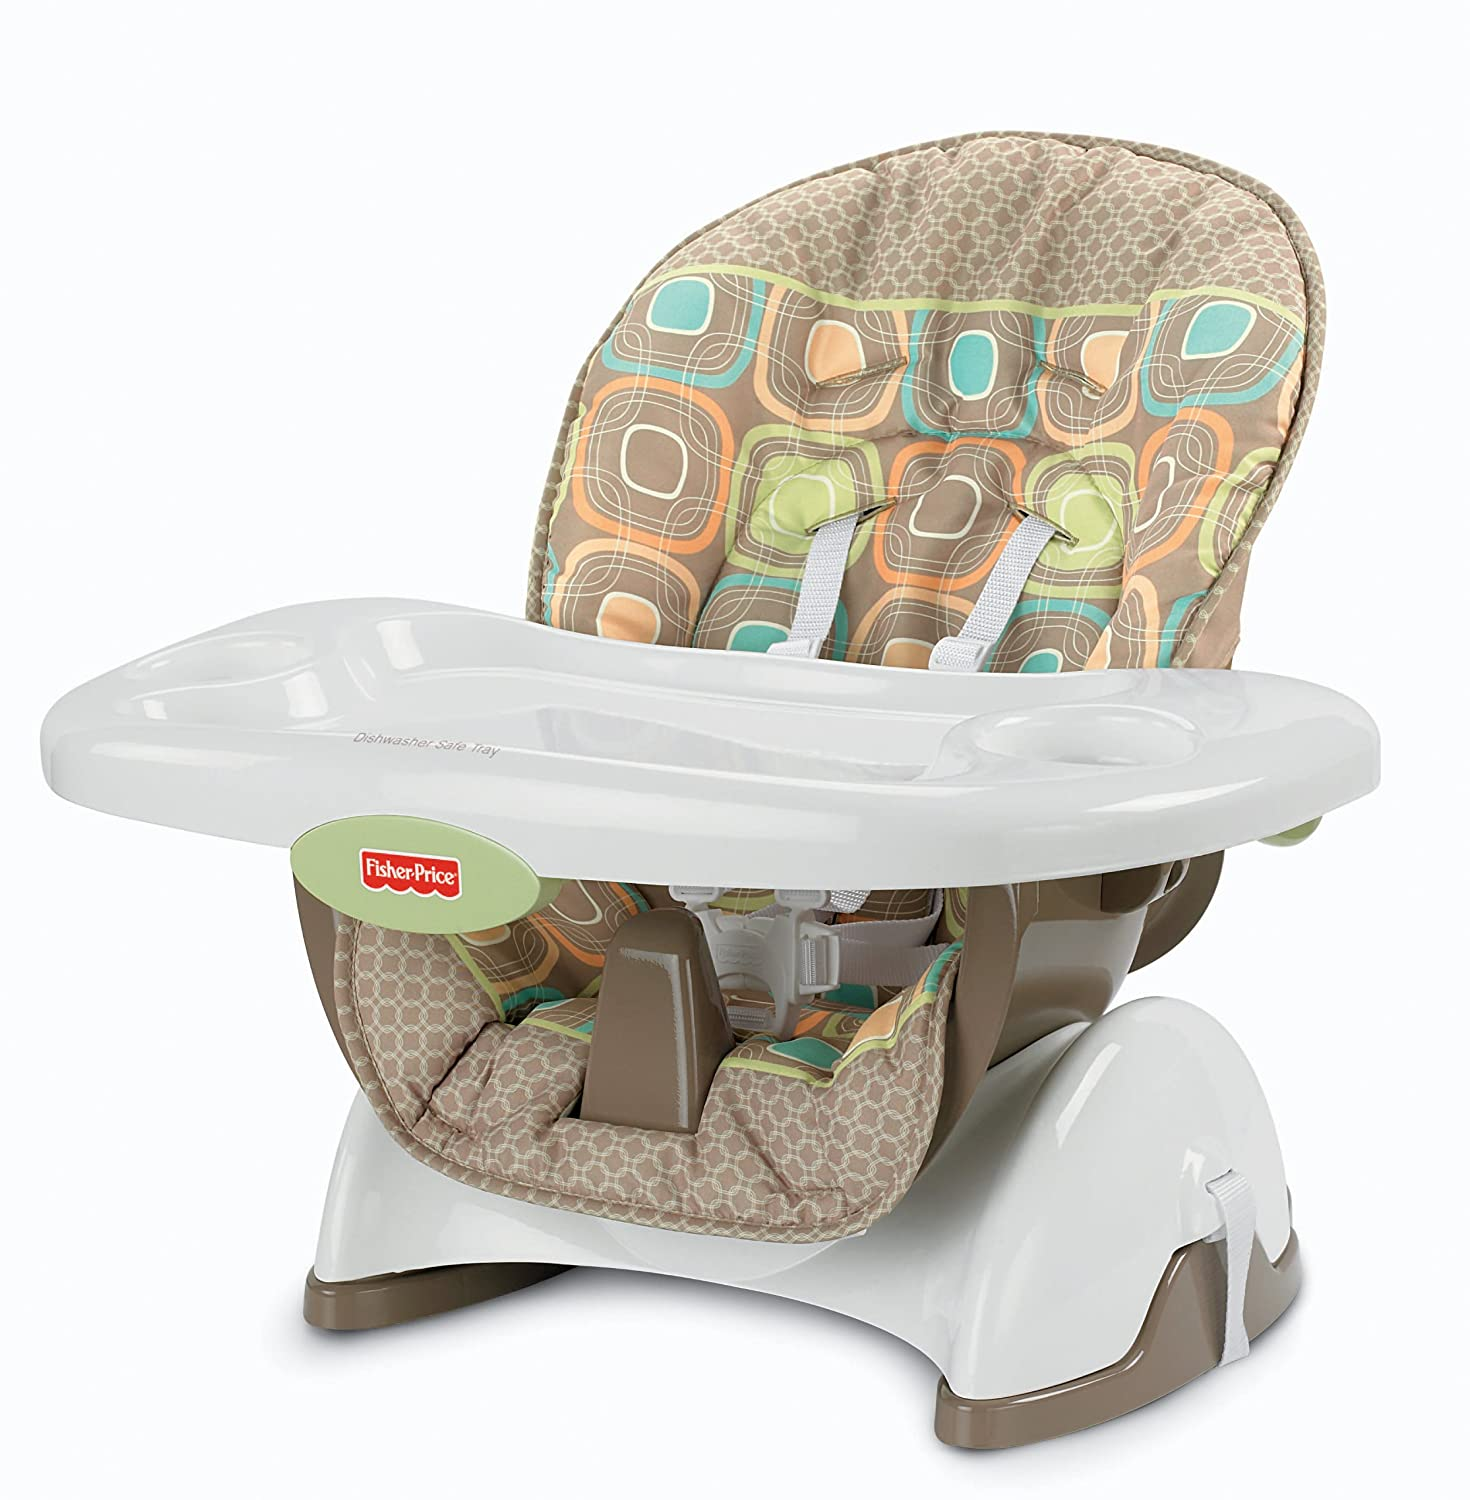 SpaceSaver Adjustable Newborn Infant Baby Feeding High Chair Table Booster Seat  eBay